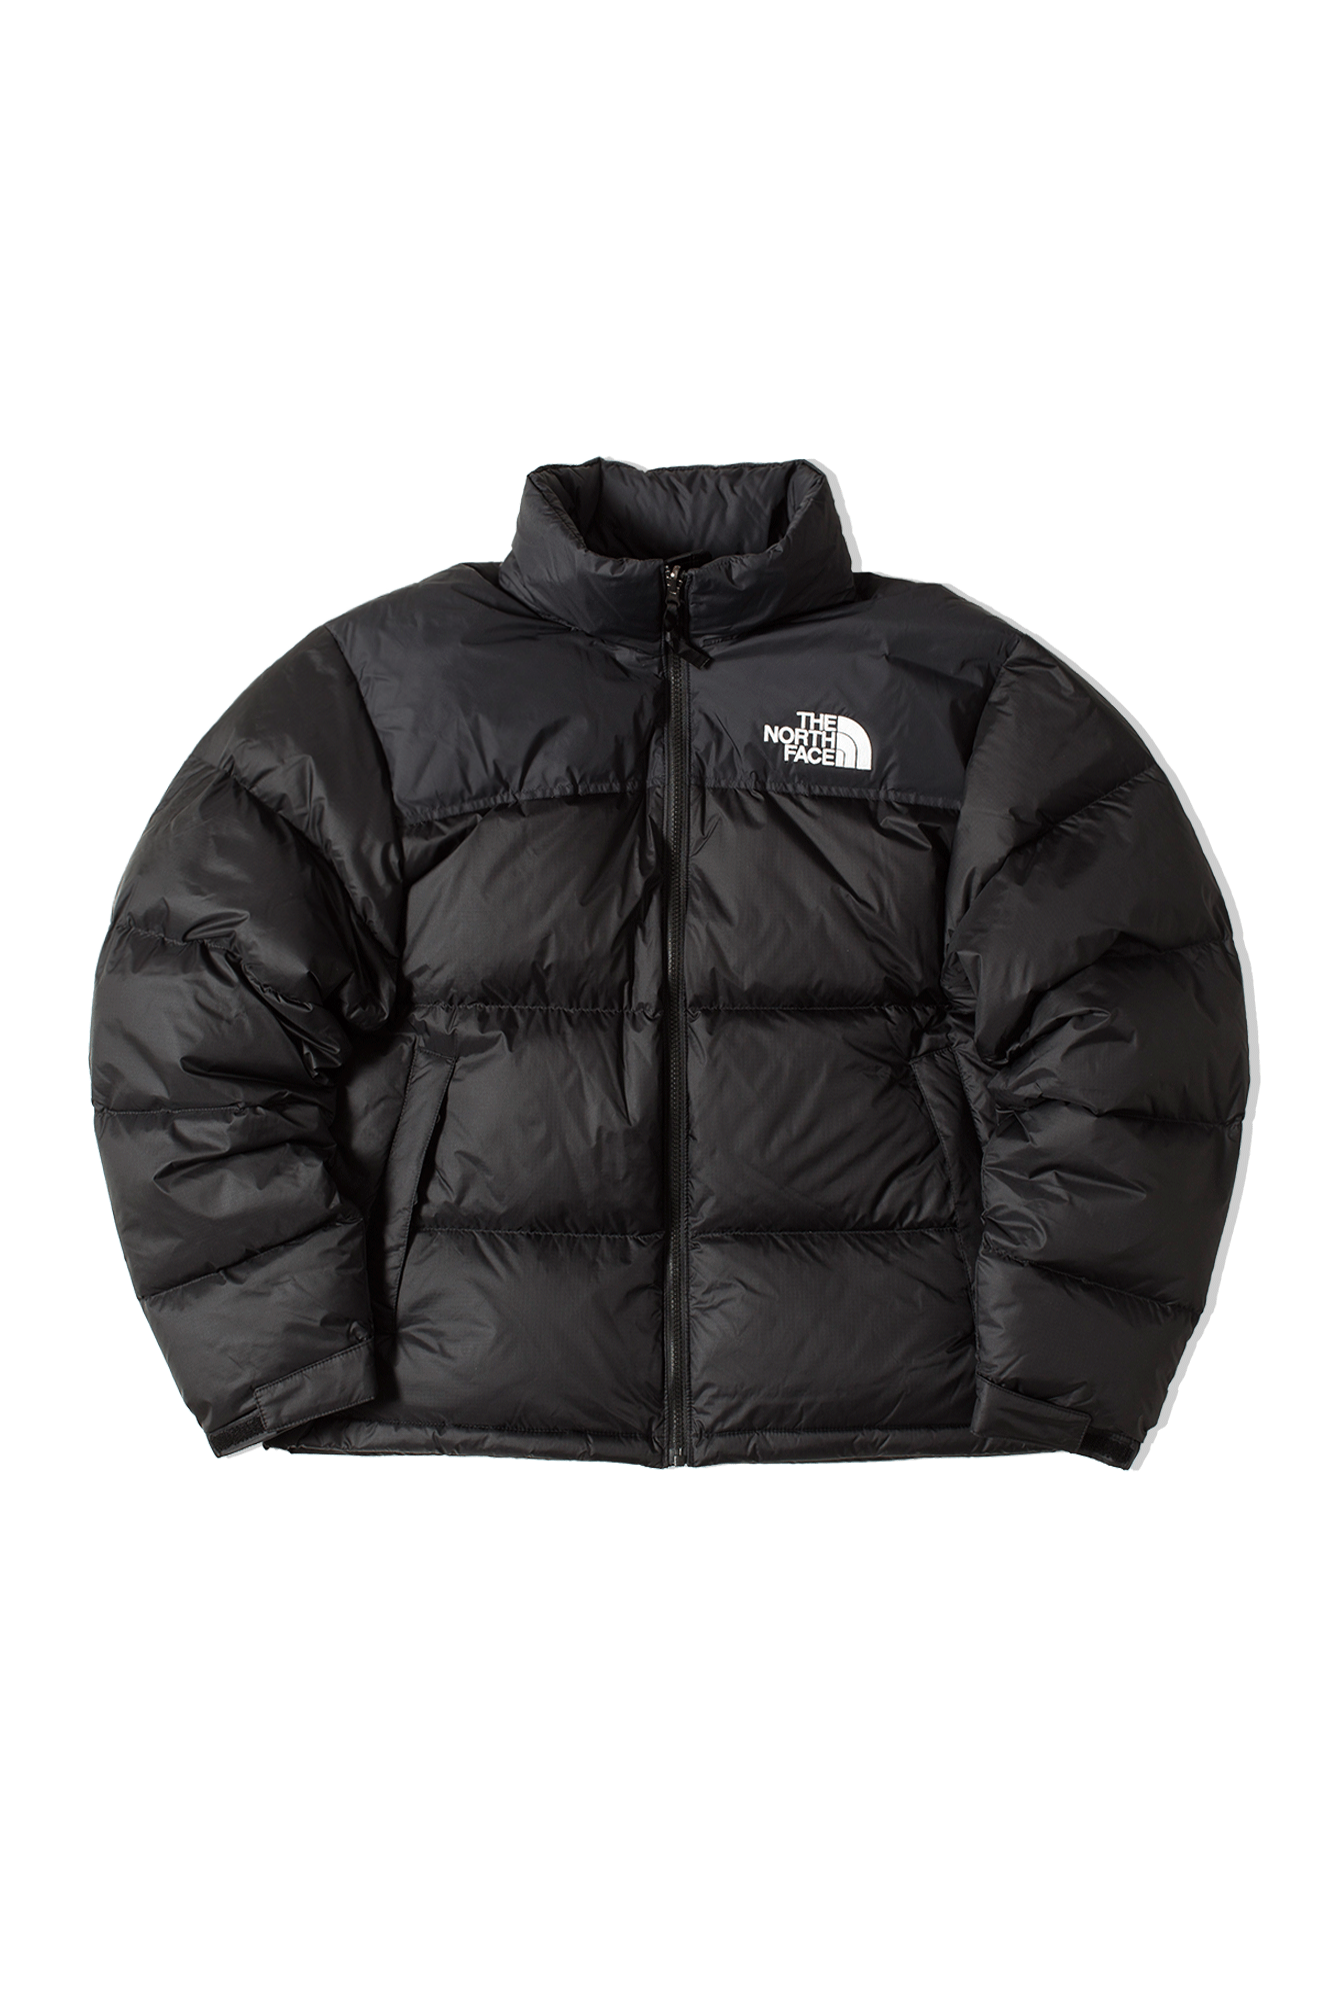 The North Face Down jackets M 1996 Retro Nuptse Down Jacket Black NF0A3C8D#000#JK31#XXS - One Block Down